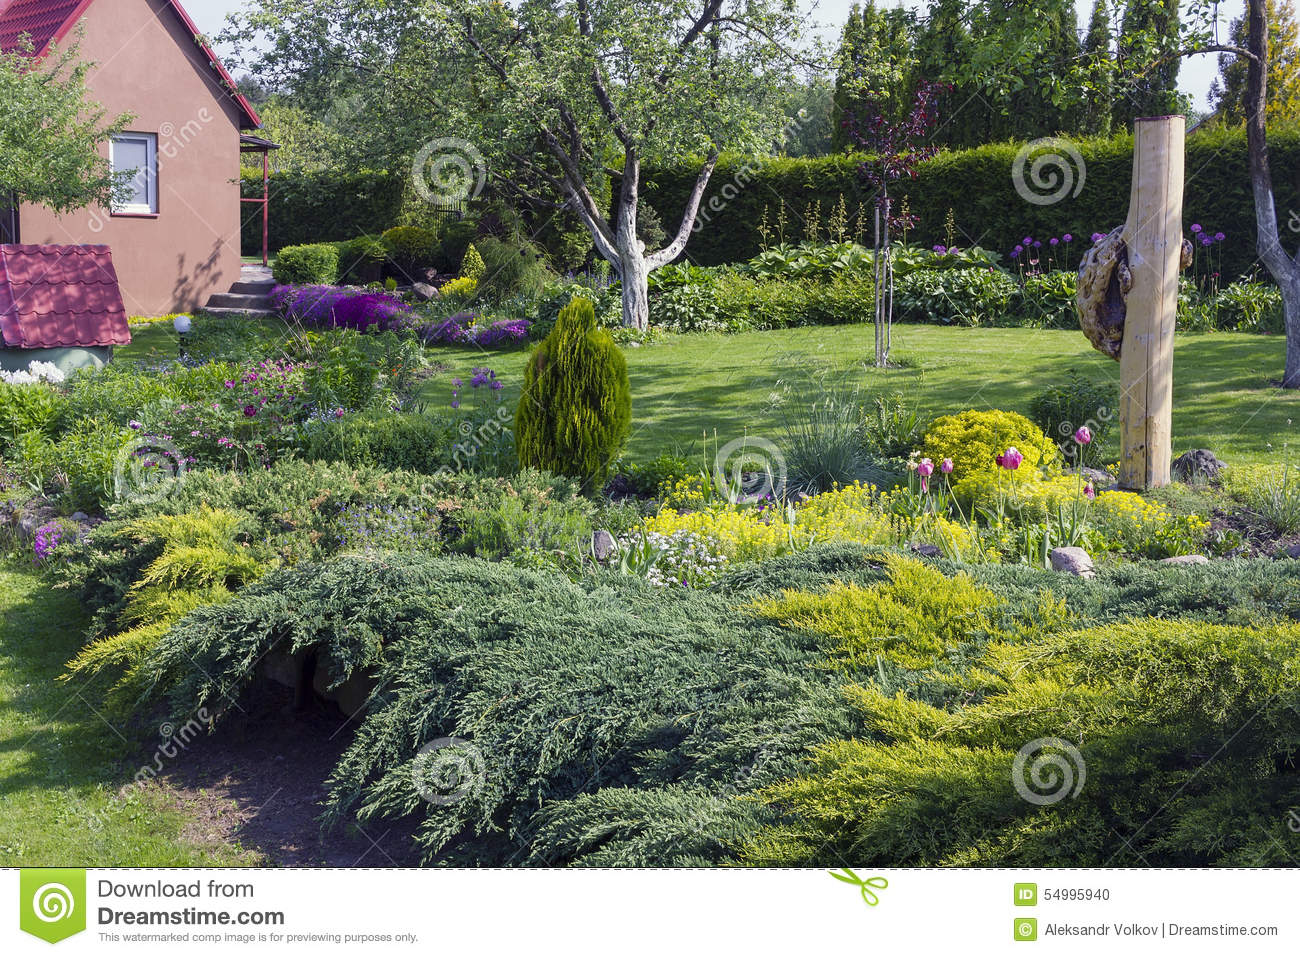 Fine european garden stock photo image 54995940 for Fine gardens landscaping